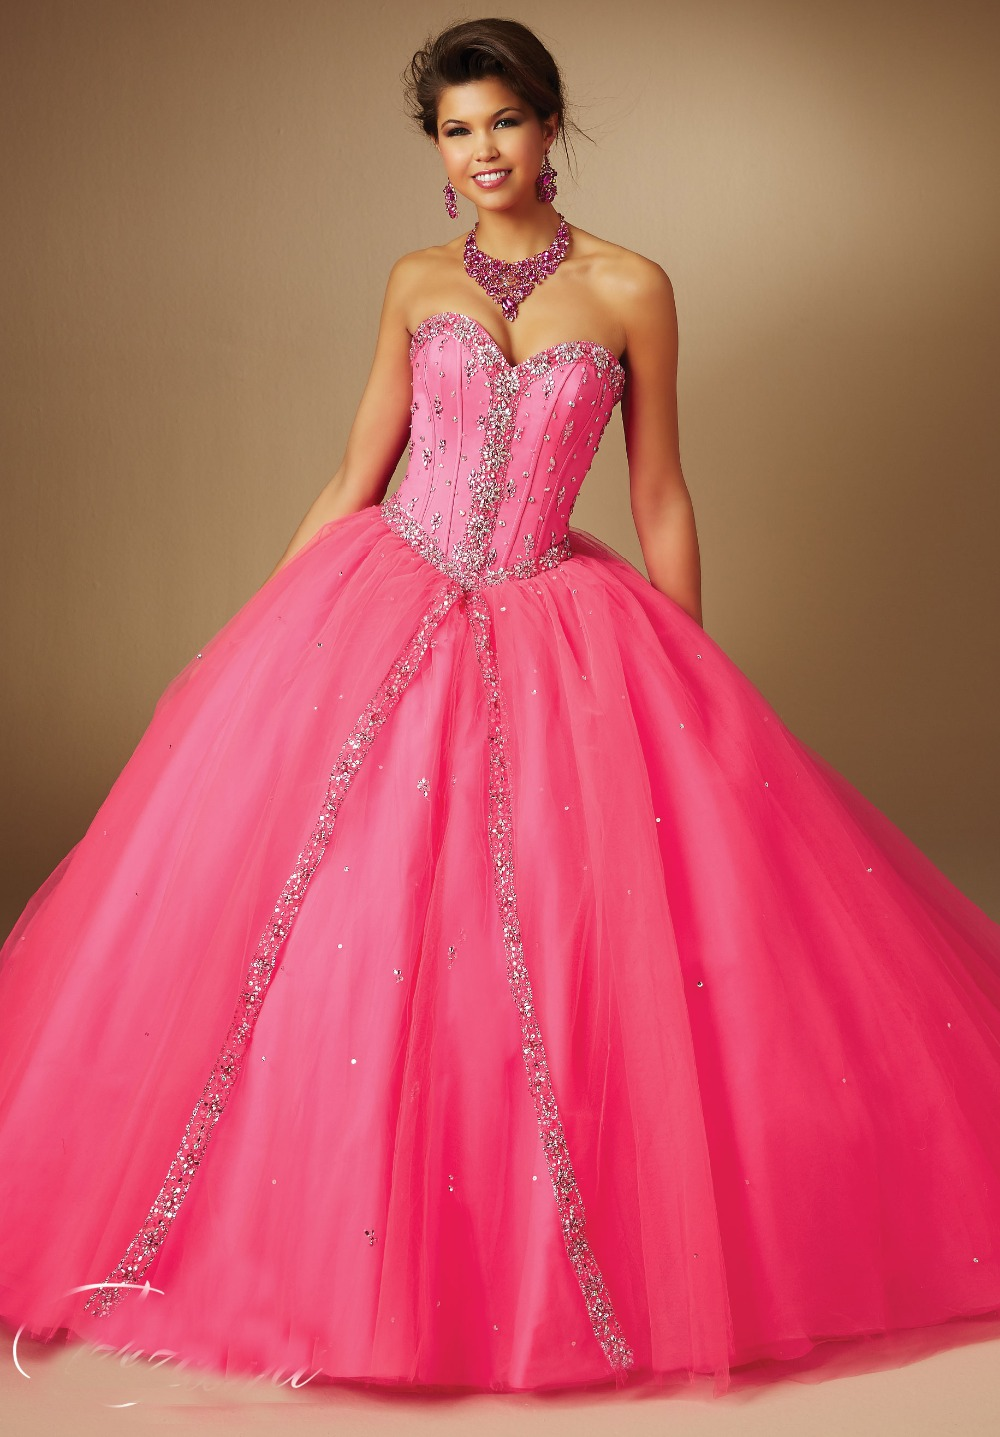 80ecbea059a 2015 Ball Gown Prom Dress Sweetheart Beaded Corset Top Tulle Hot Pink  Quinceanera Dresses With Wrapped Skirt-in Quinceanera Dresses from Weddings    Events ...